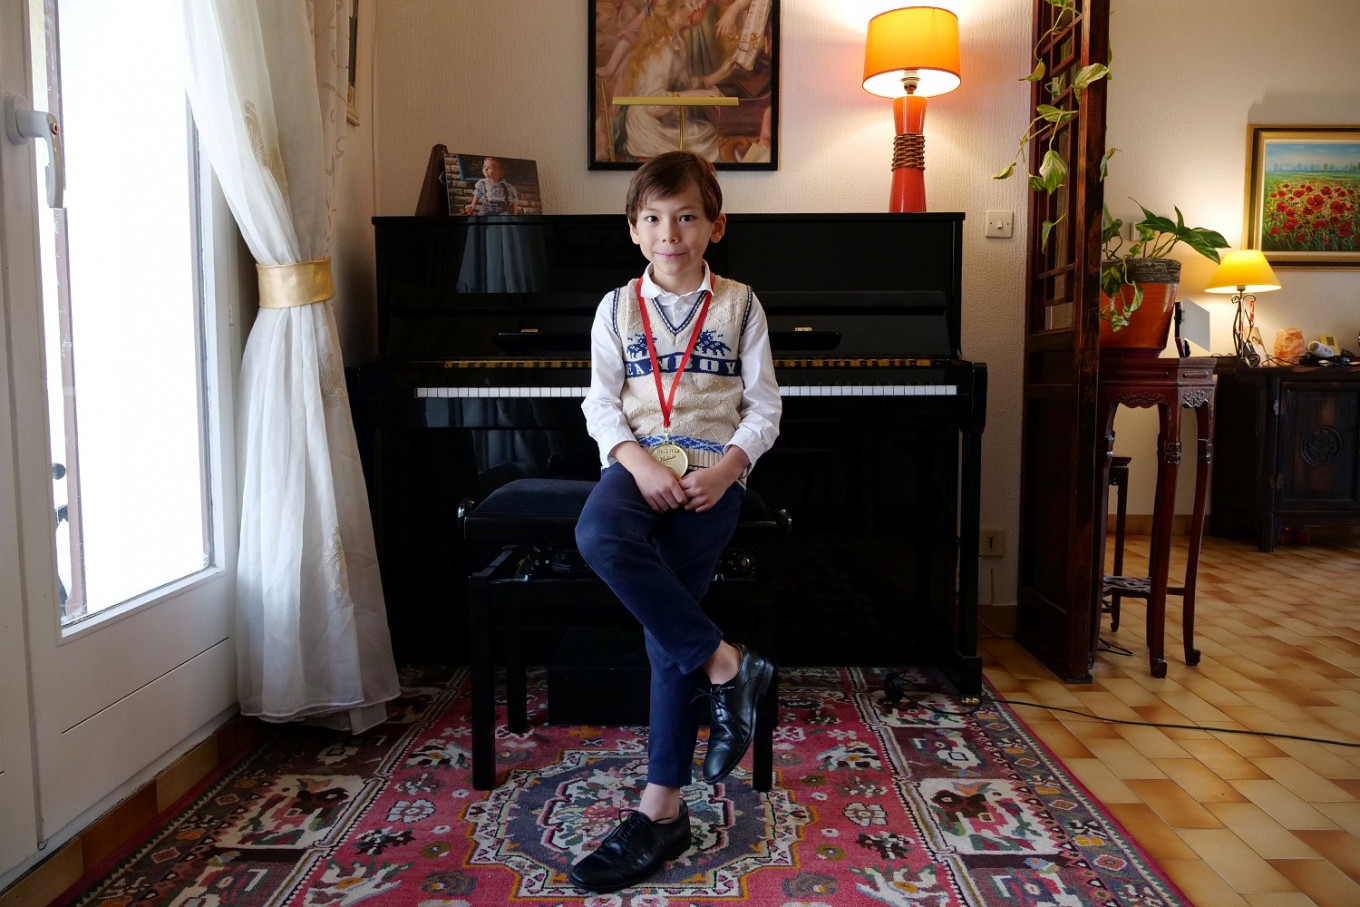 Meet the six-year-old pianist who plays Rachmaninoff